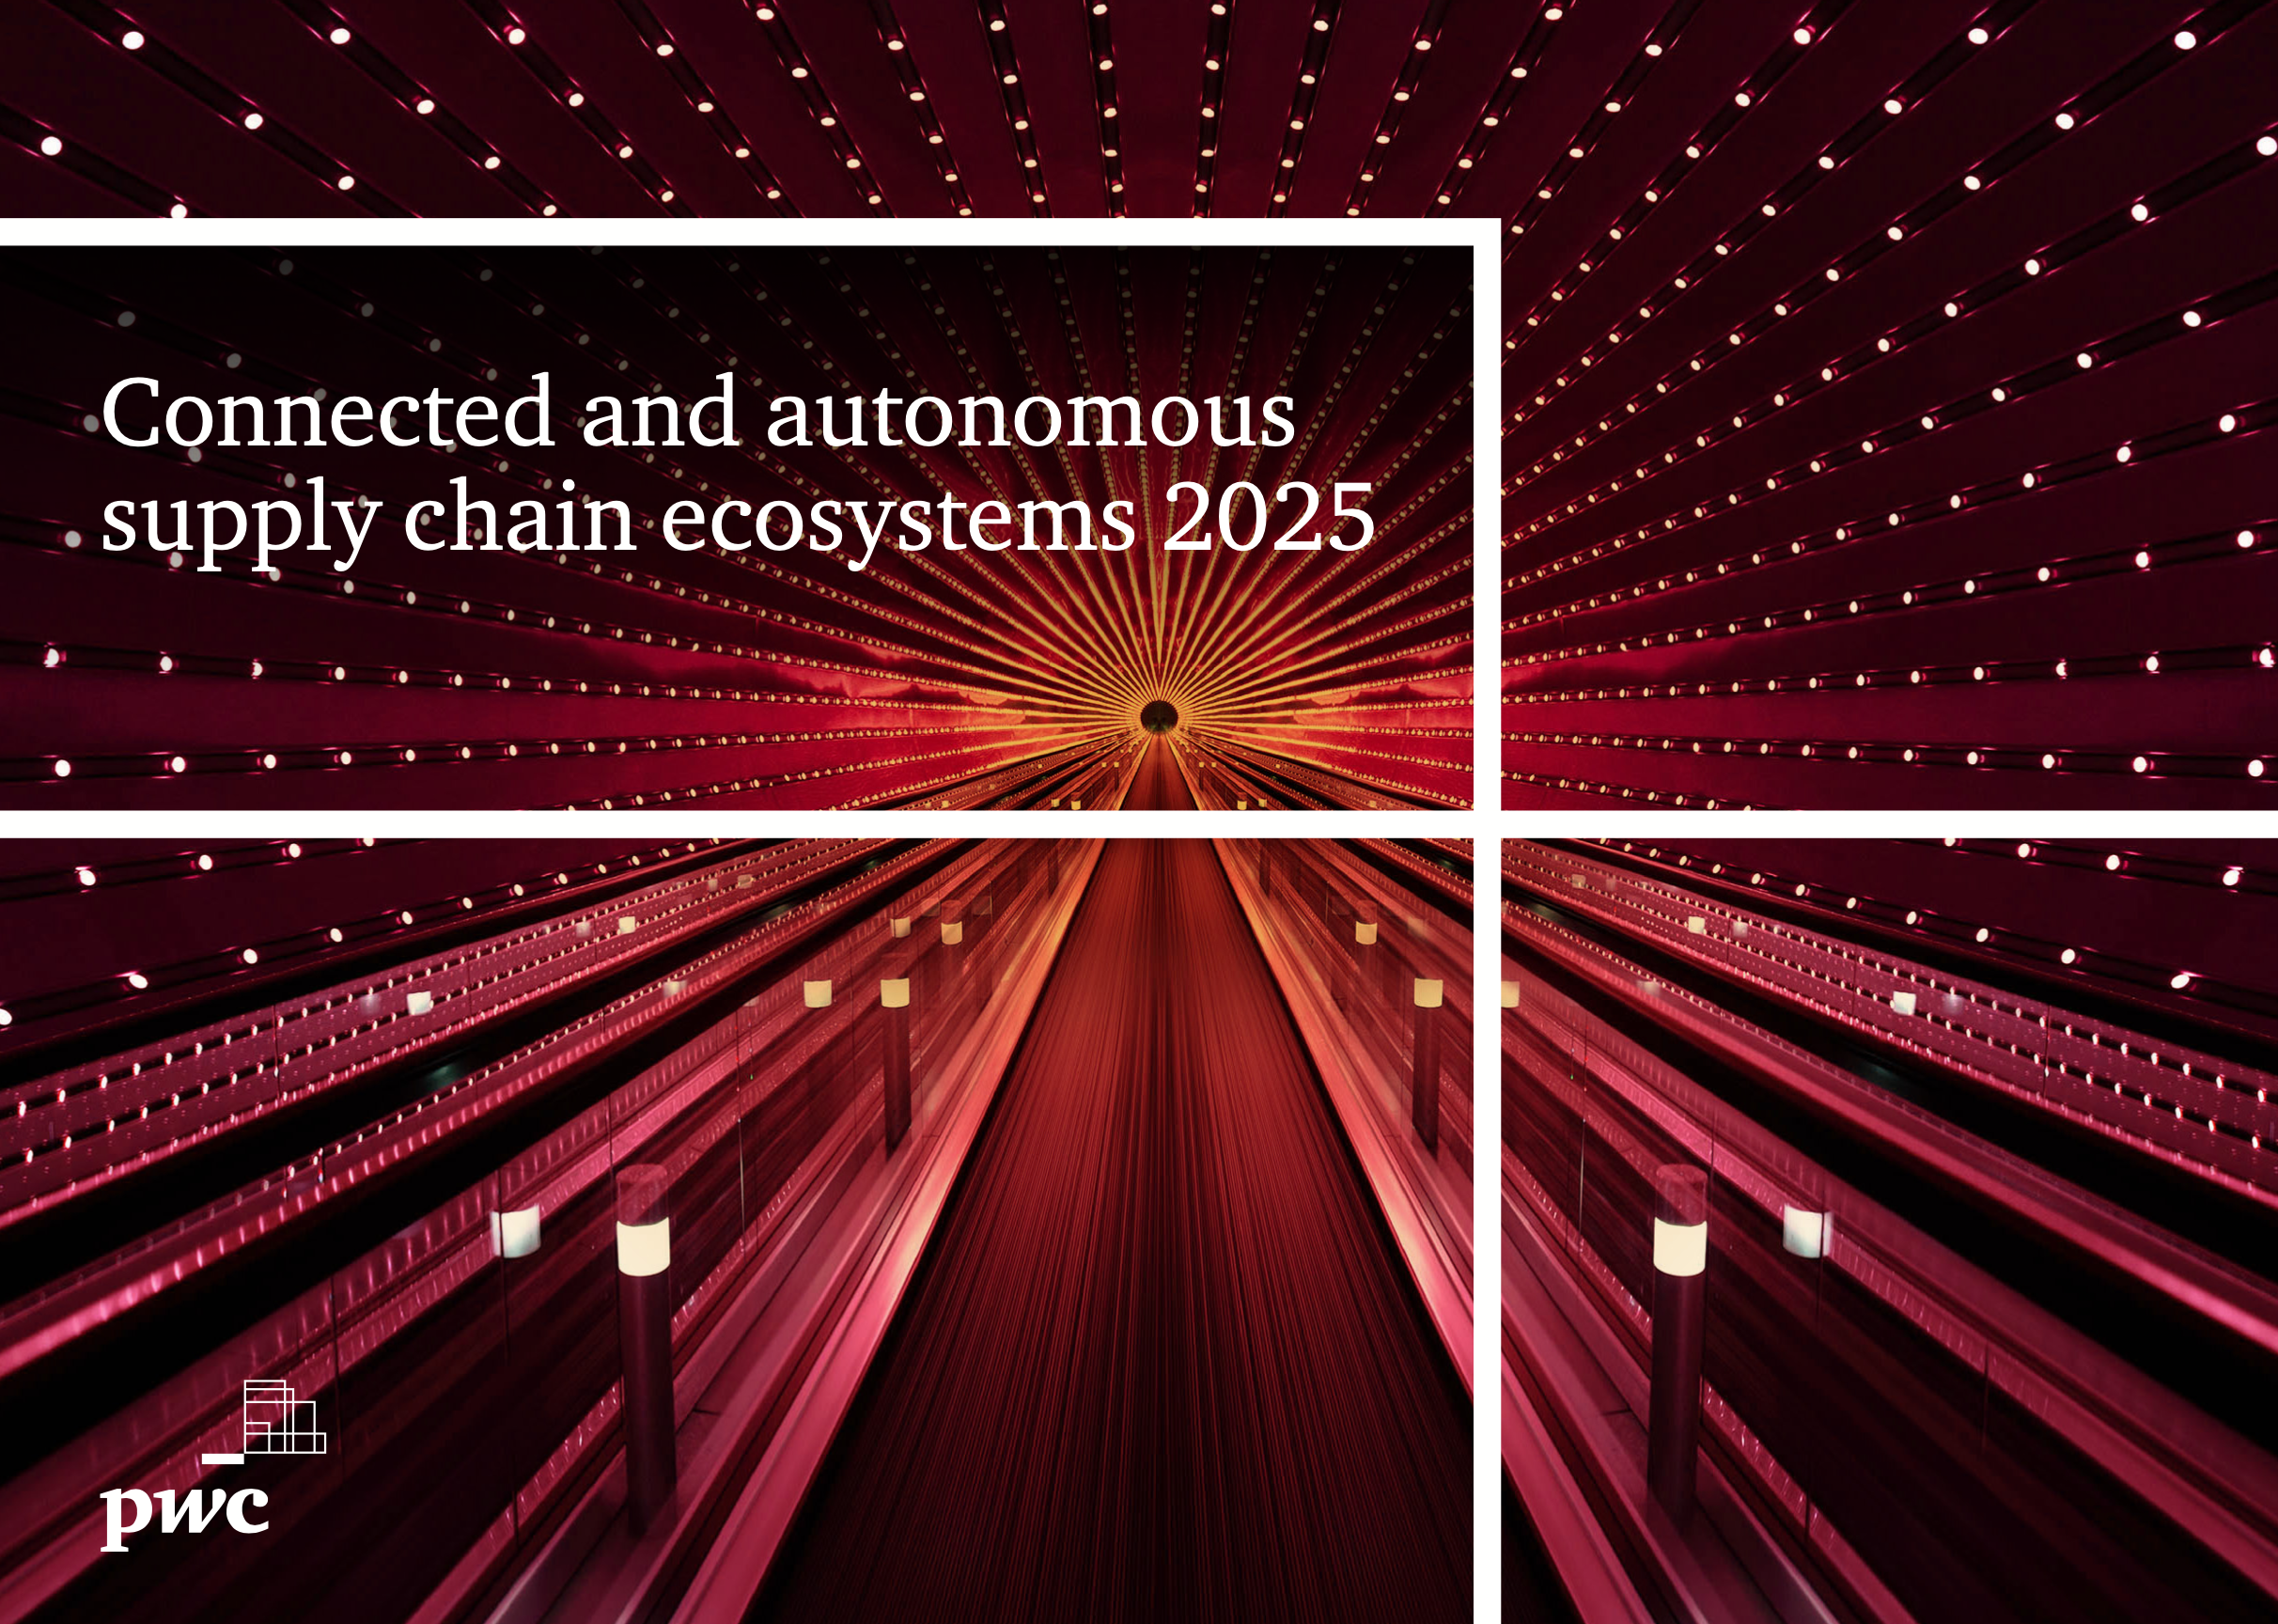 PwC Autonomous Supply Chain Ecosystems 2025